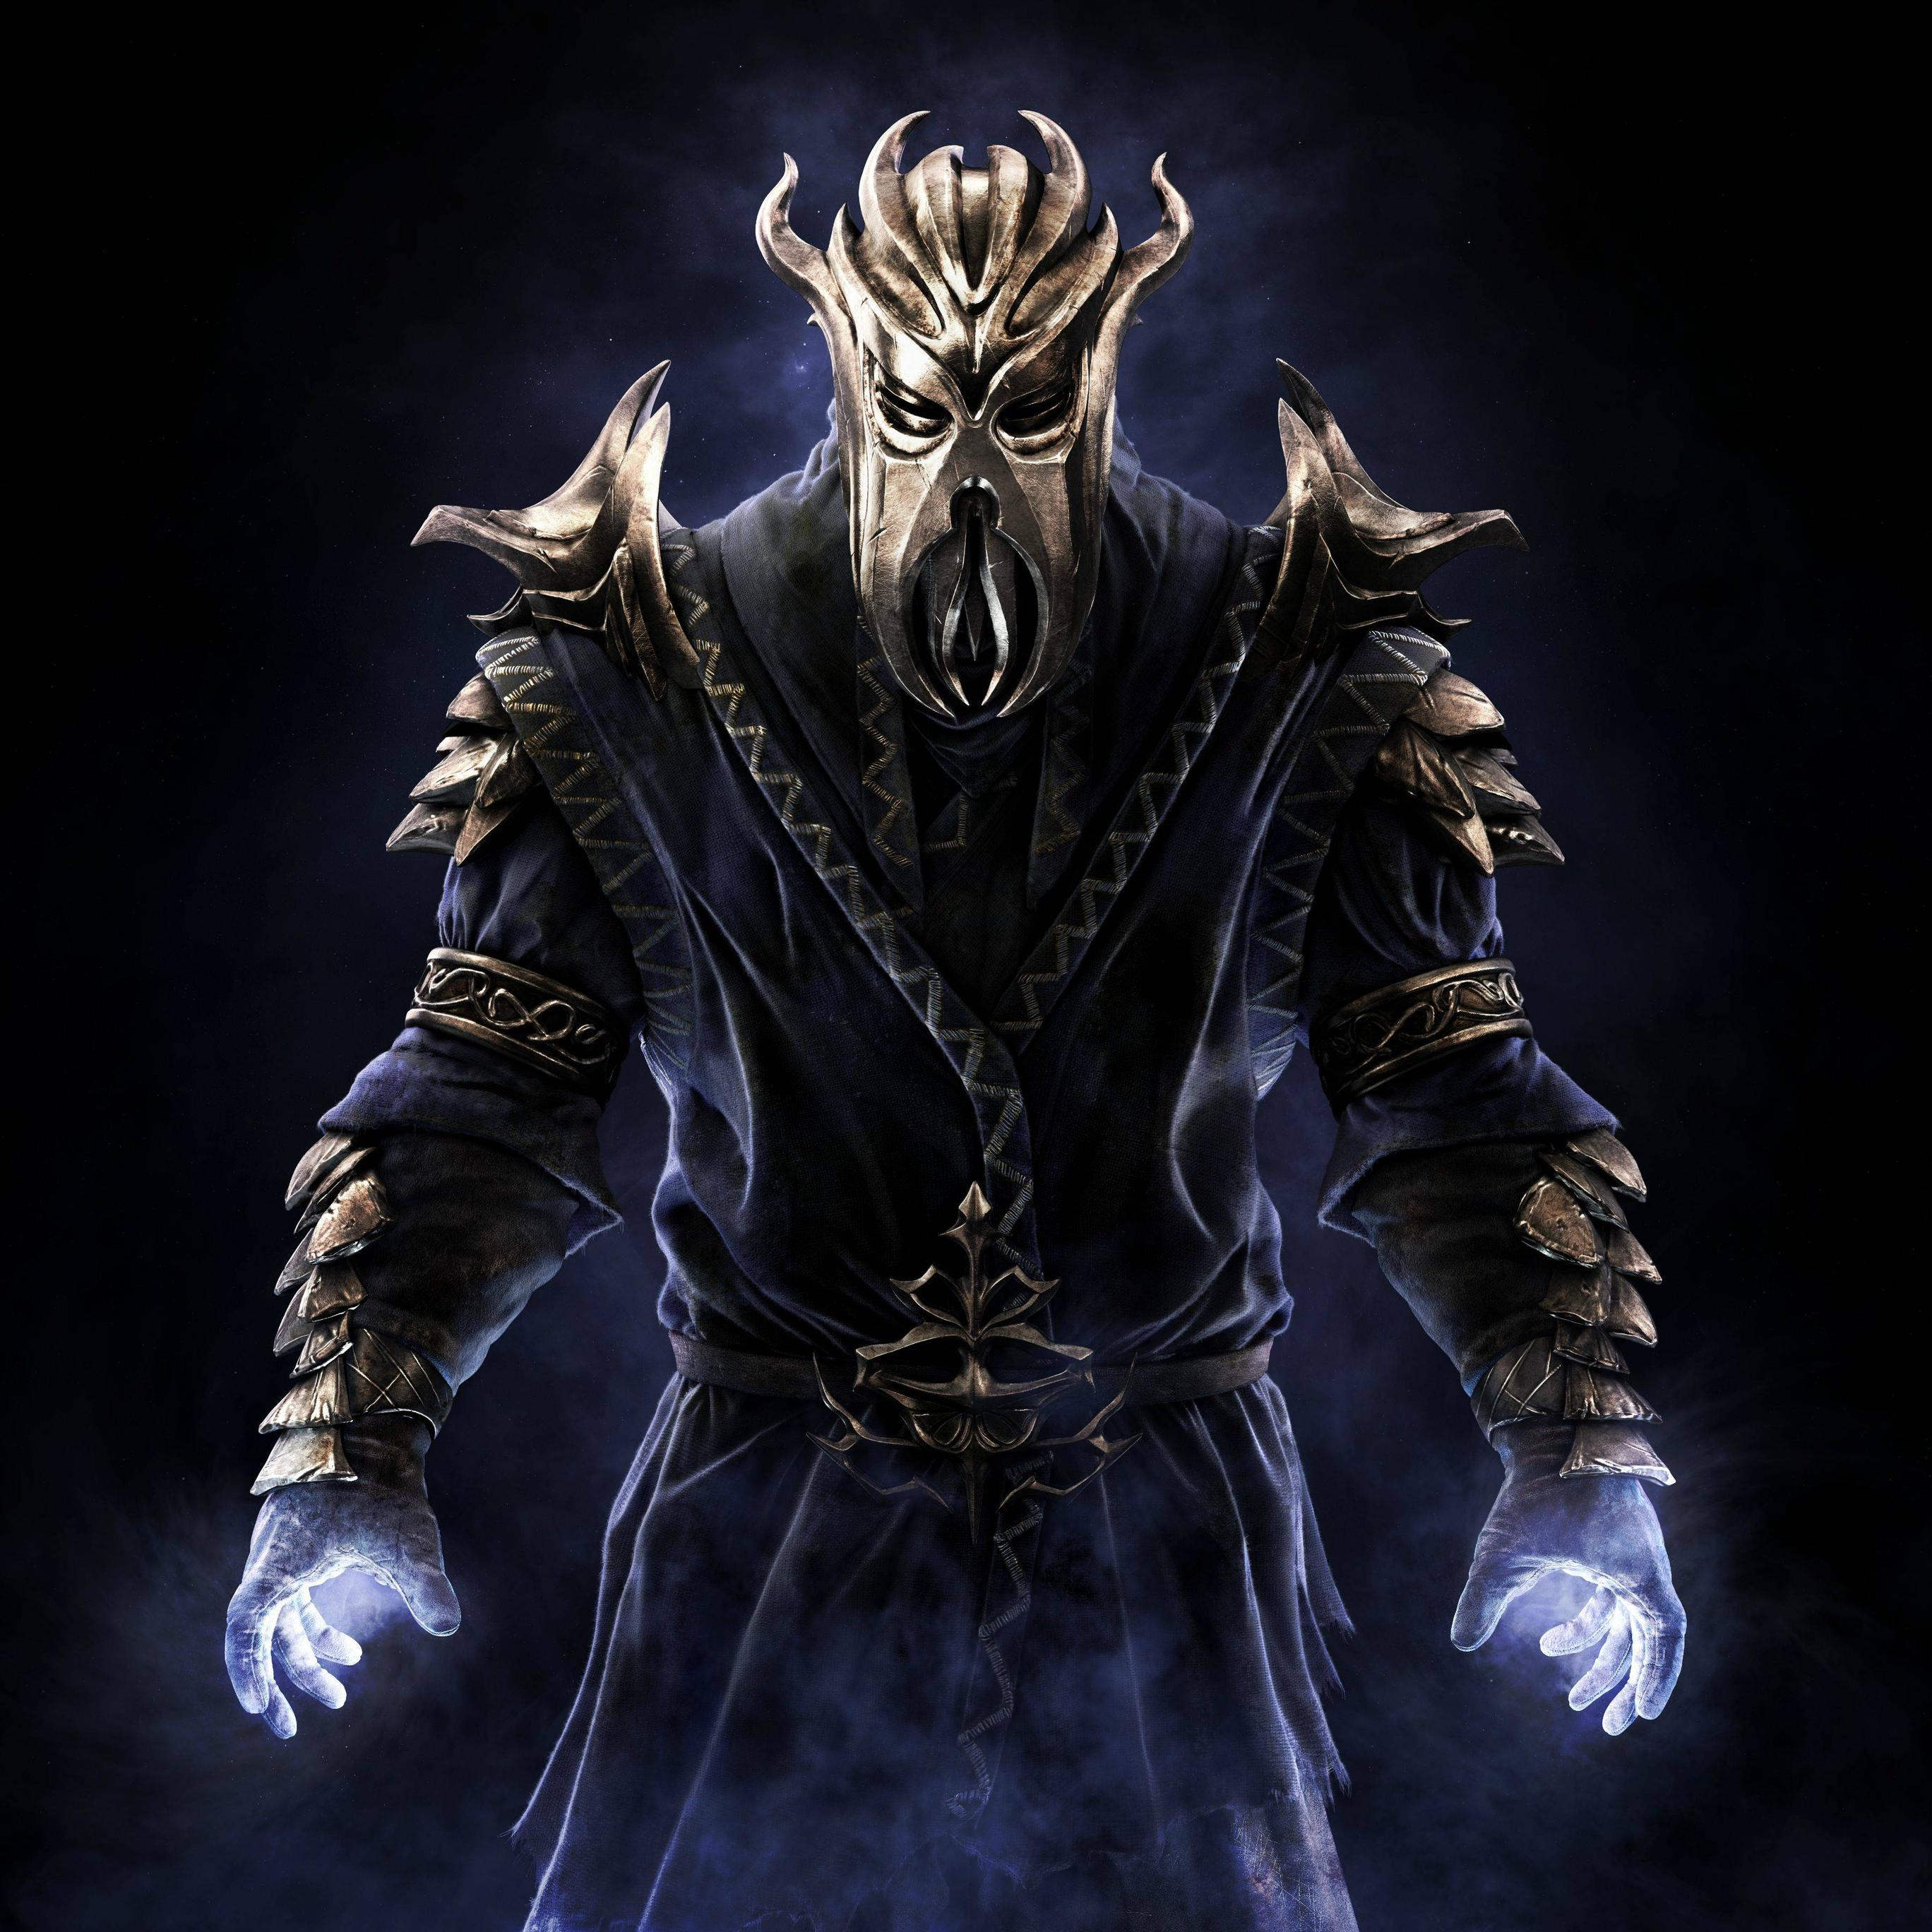 The First Dragonborn from Skyrim